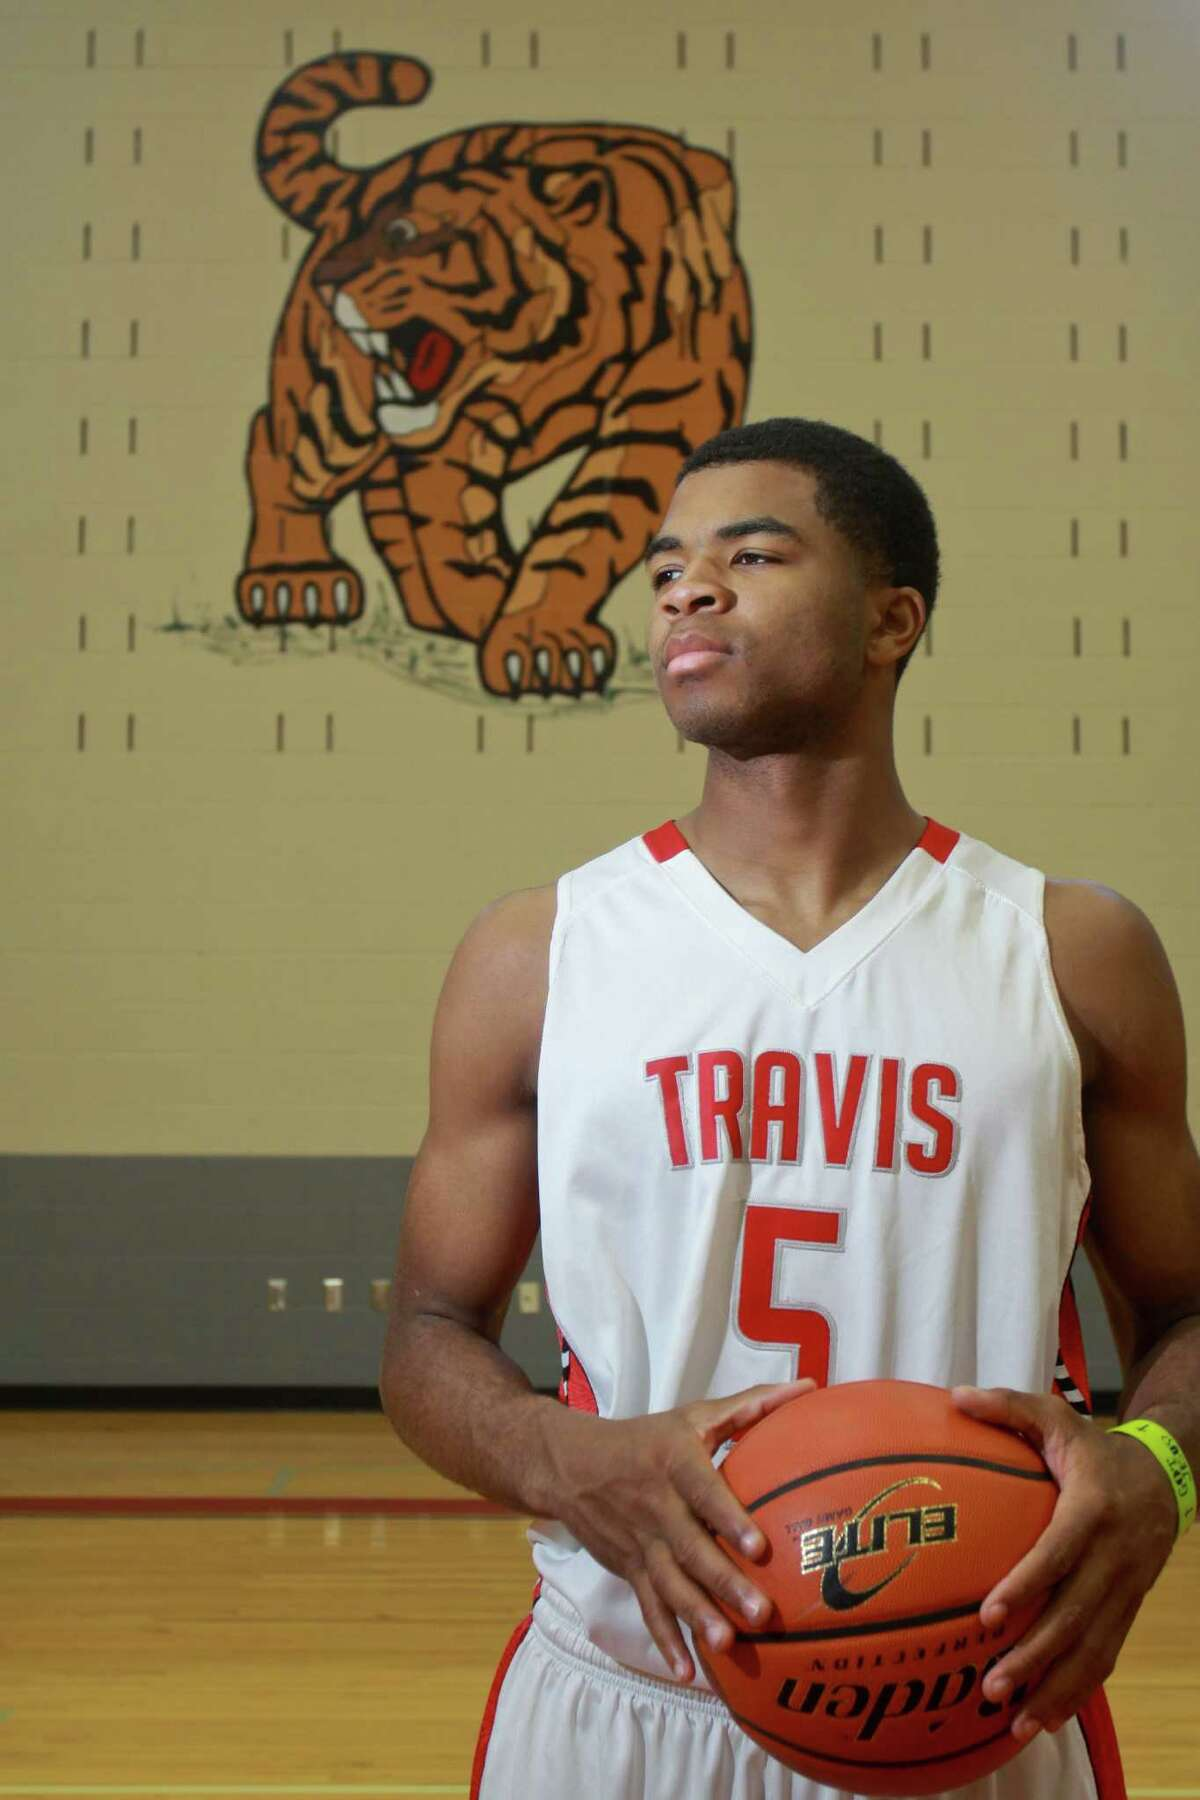 Andrew Harrison, along with twin brother Aaron, helped lead Travis to the Class 5A state championship. Both are headed to Kentucky in the fall.